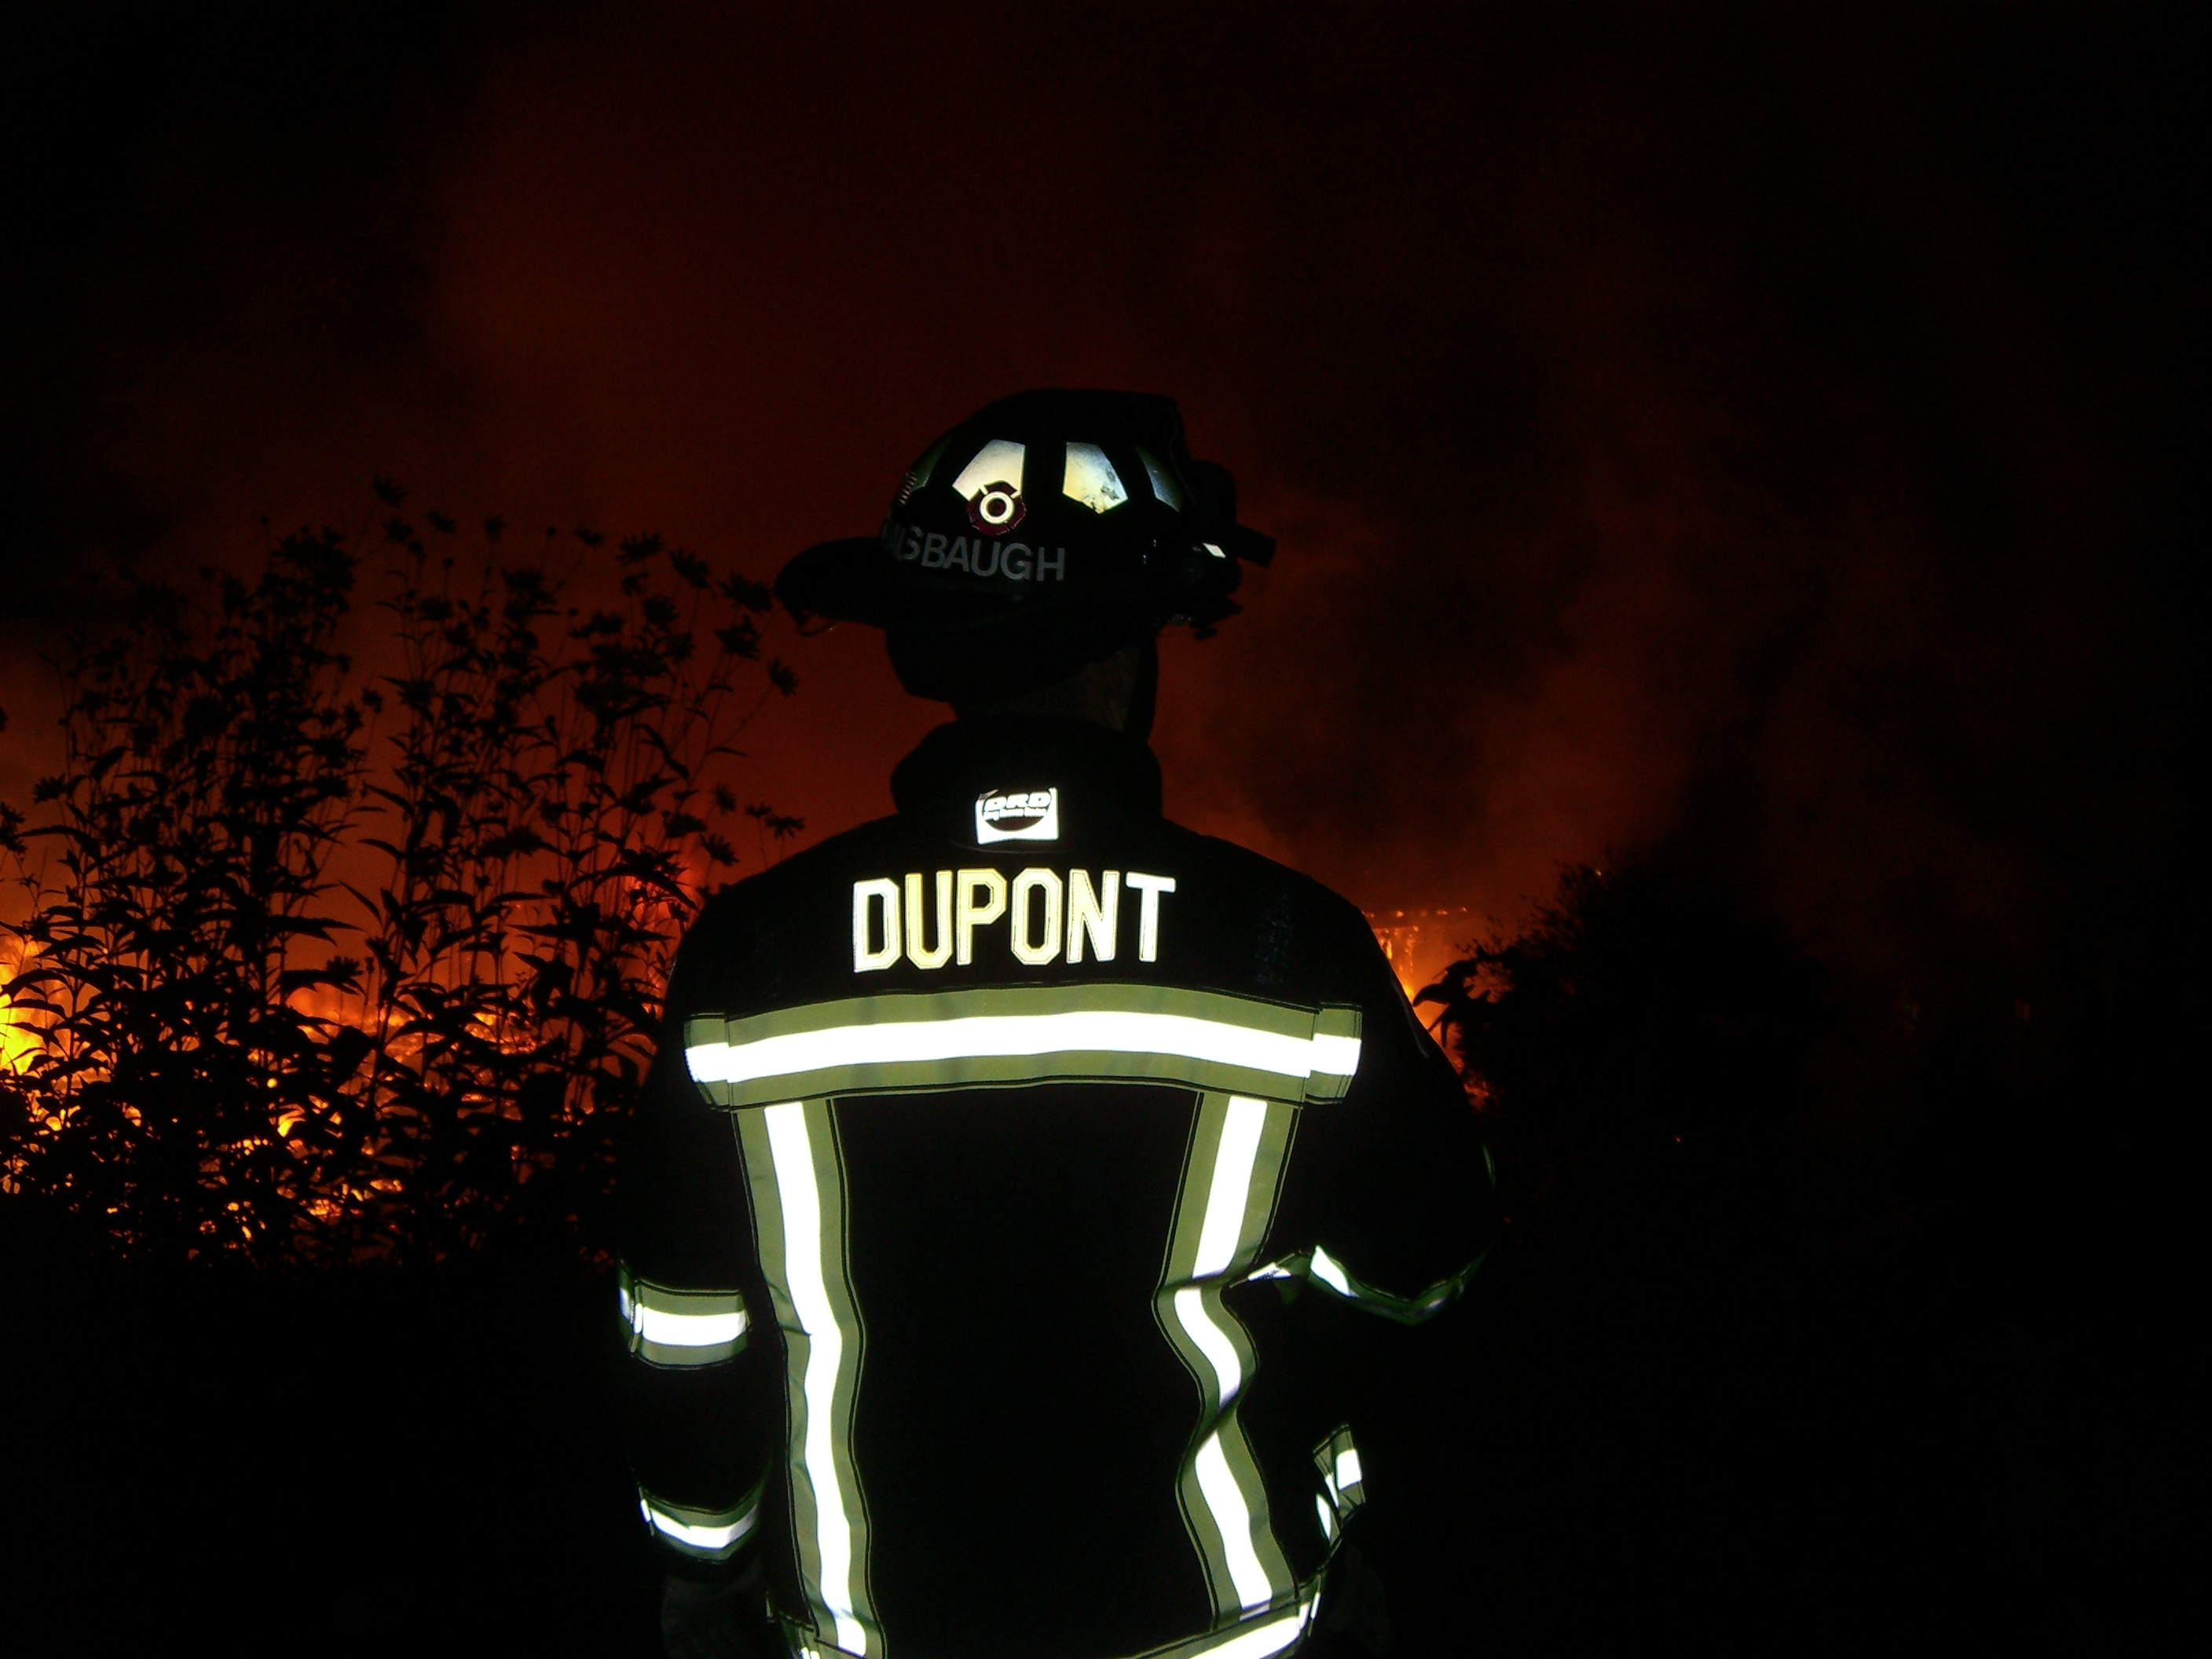 Firefighter DuPont at Night